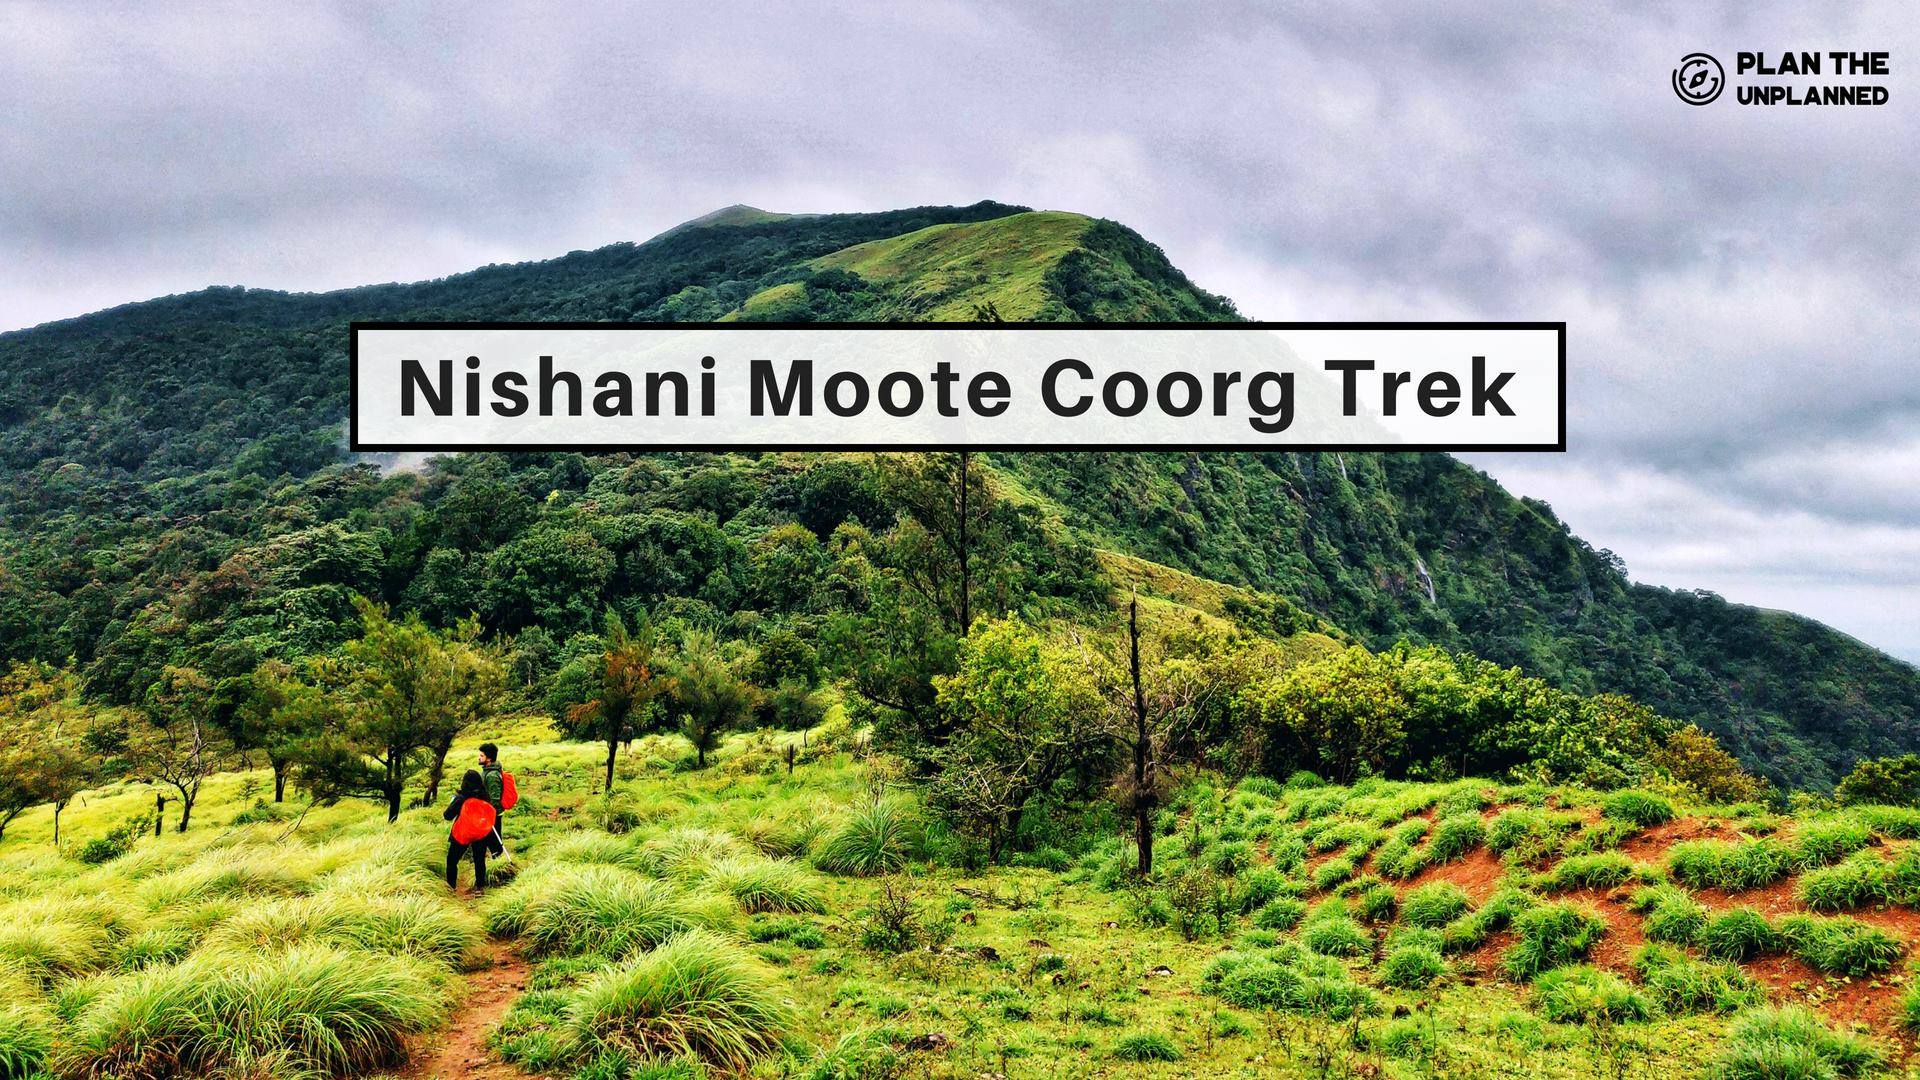 Nishani Motte Coorg Trek | Plan The Unplanned